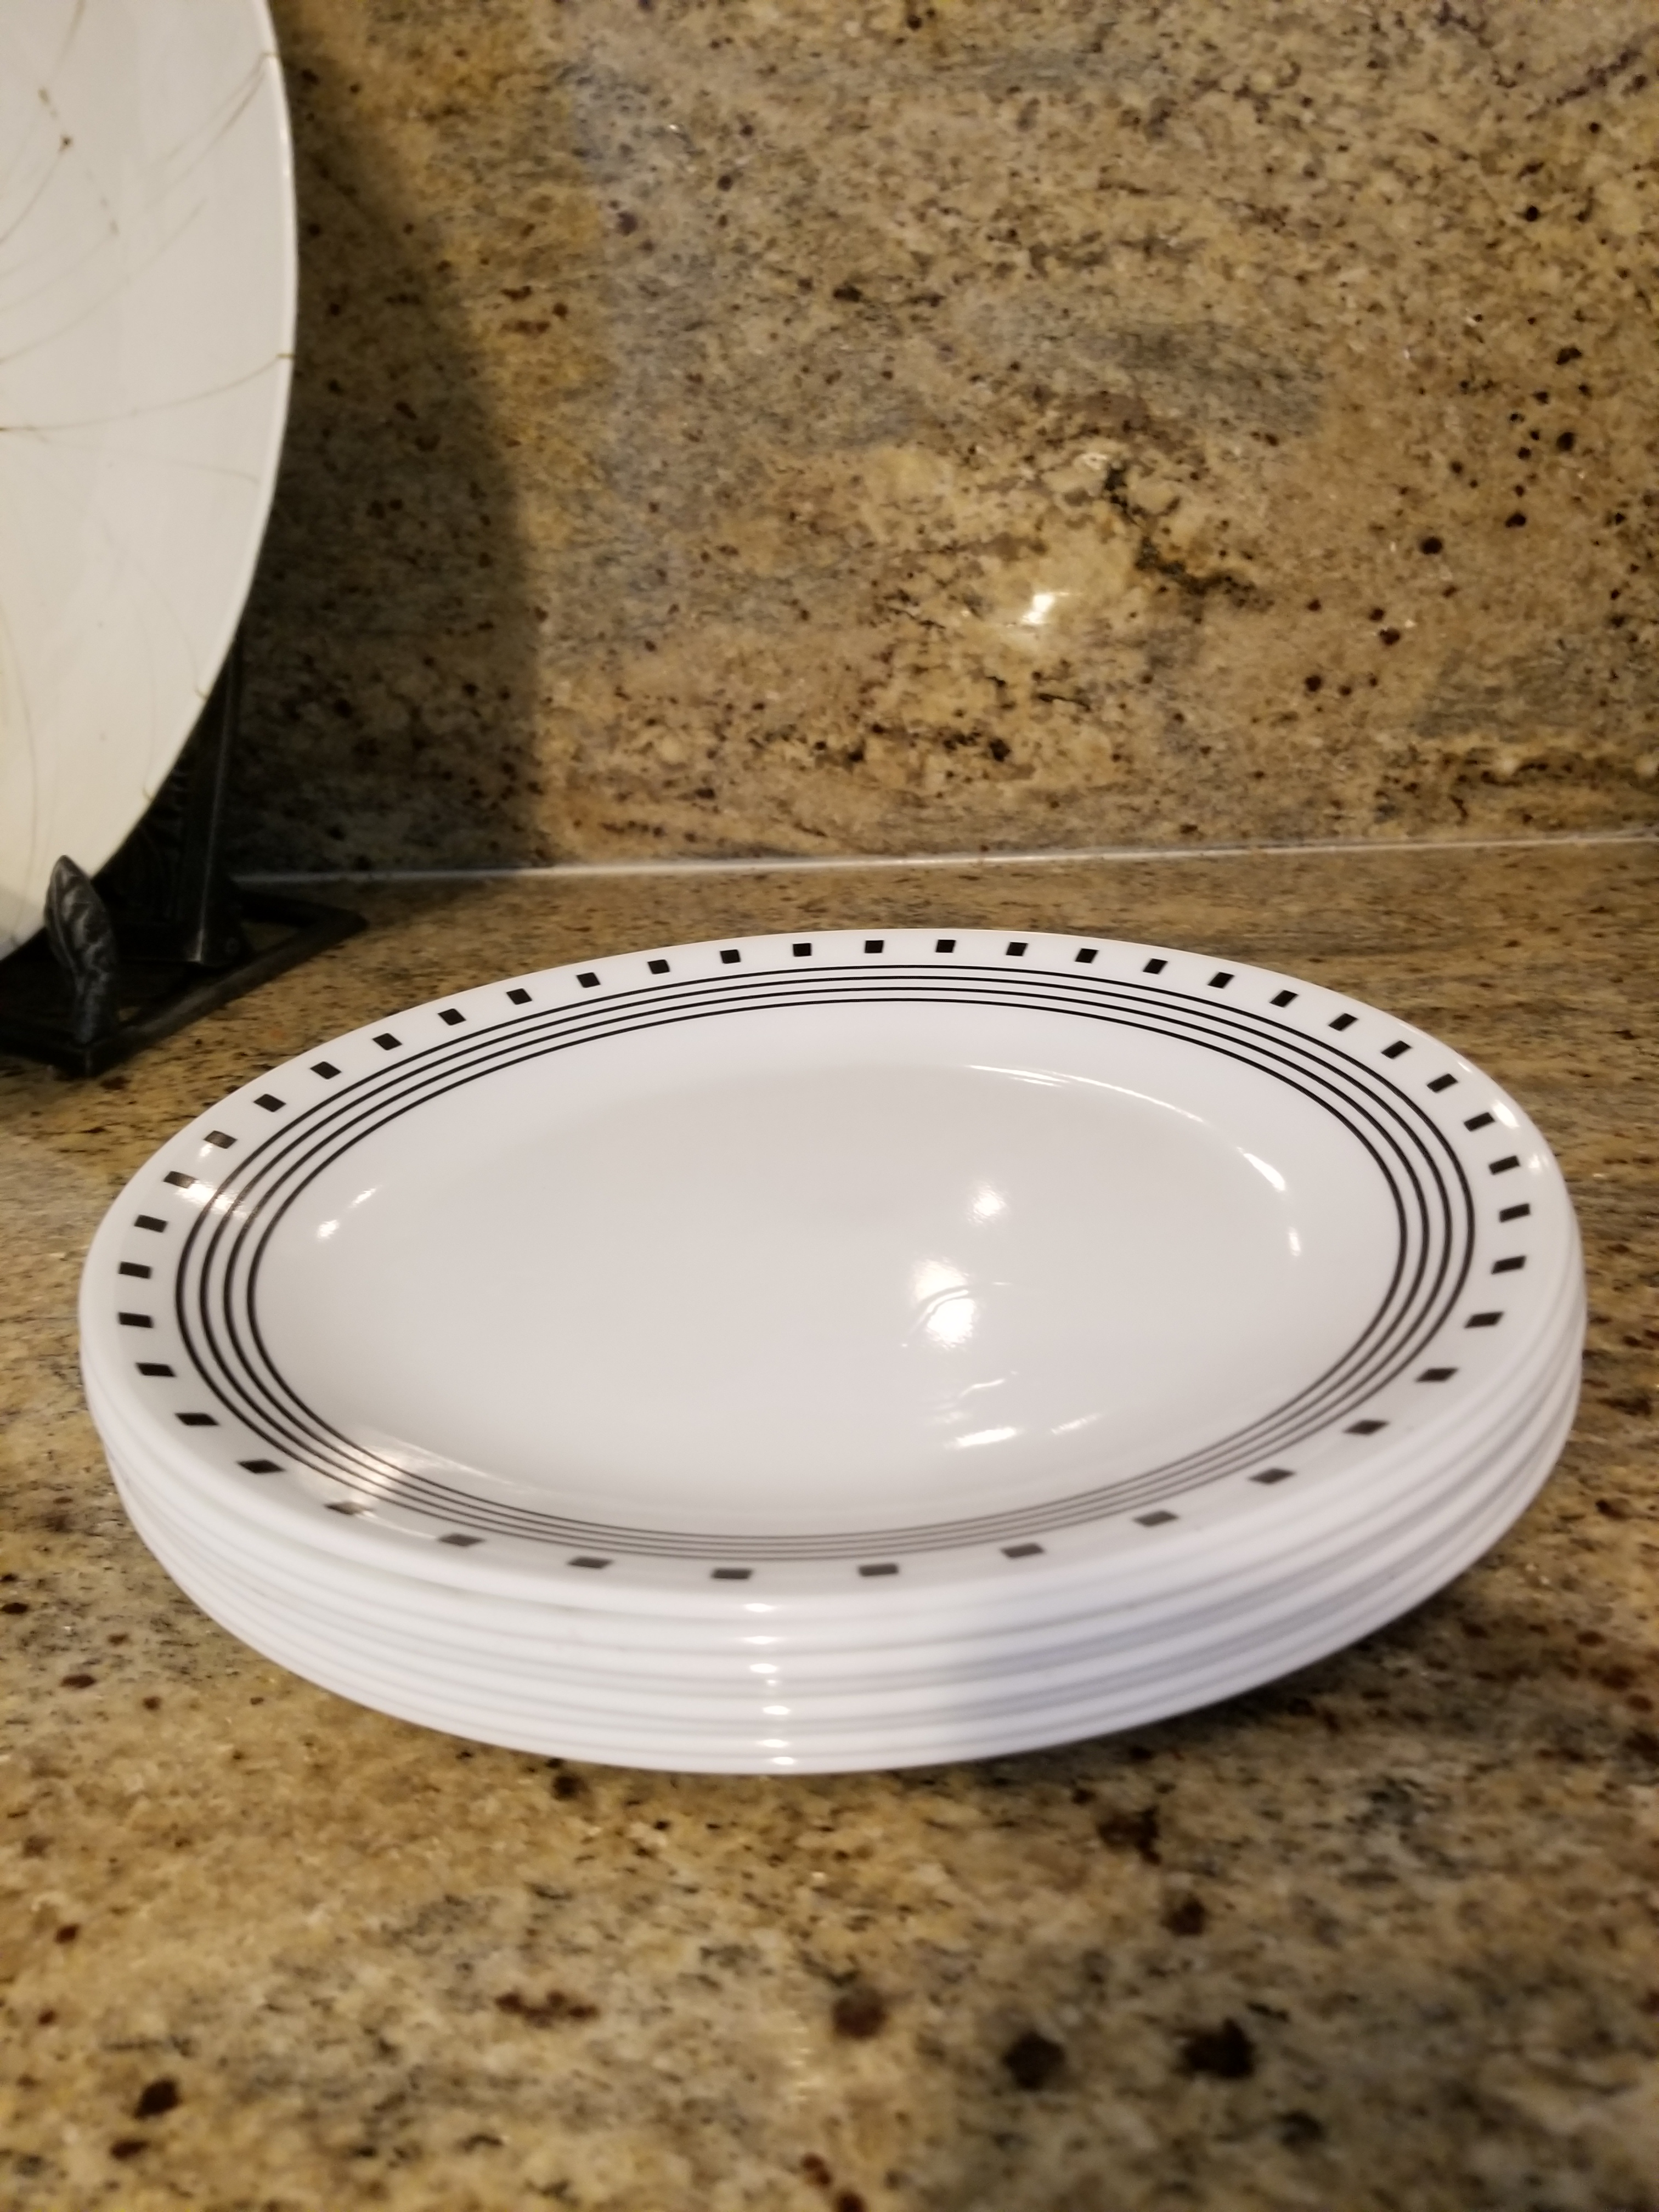 Vintage Black and White Corelle Large Dinner Plates - Set of 8 - Image 5 of  sc 1 st  Chairish & Vintage Black and White Corelle Large Dinner Plates - Set of 8